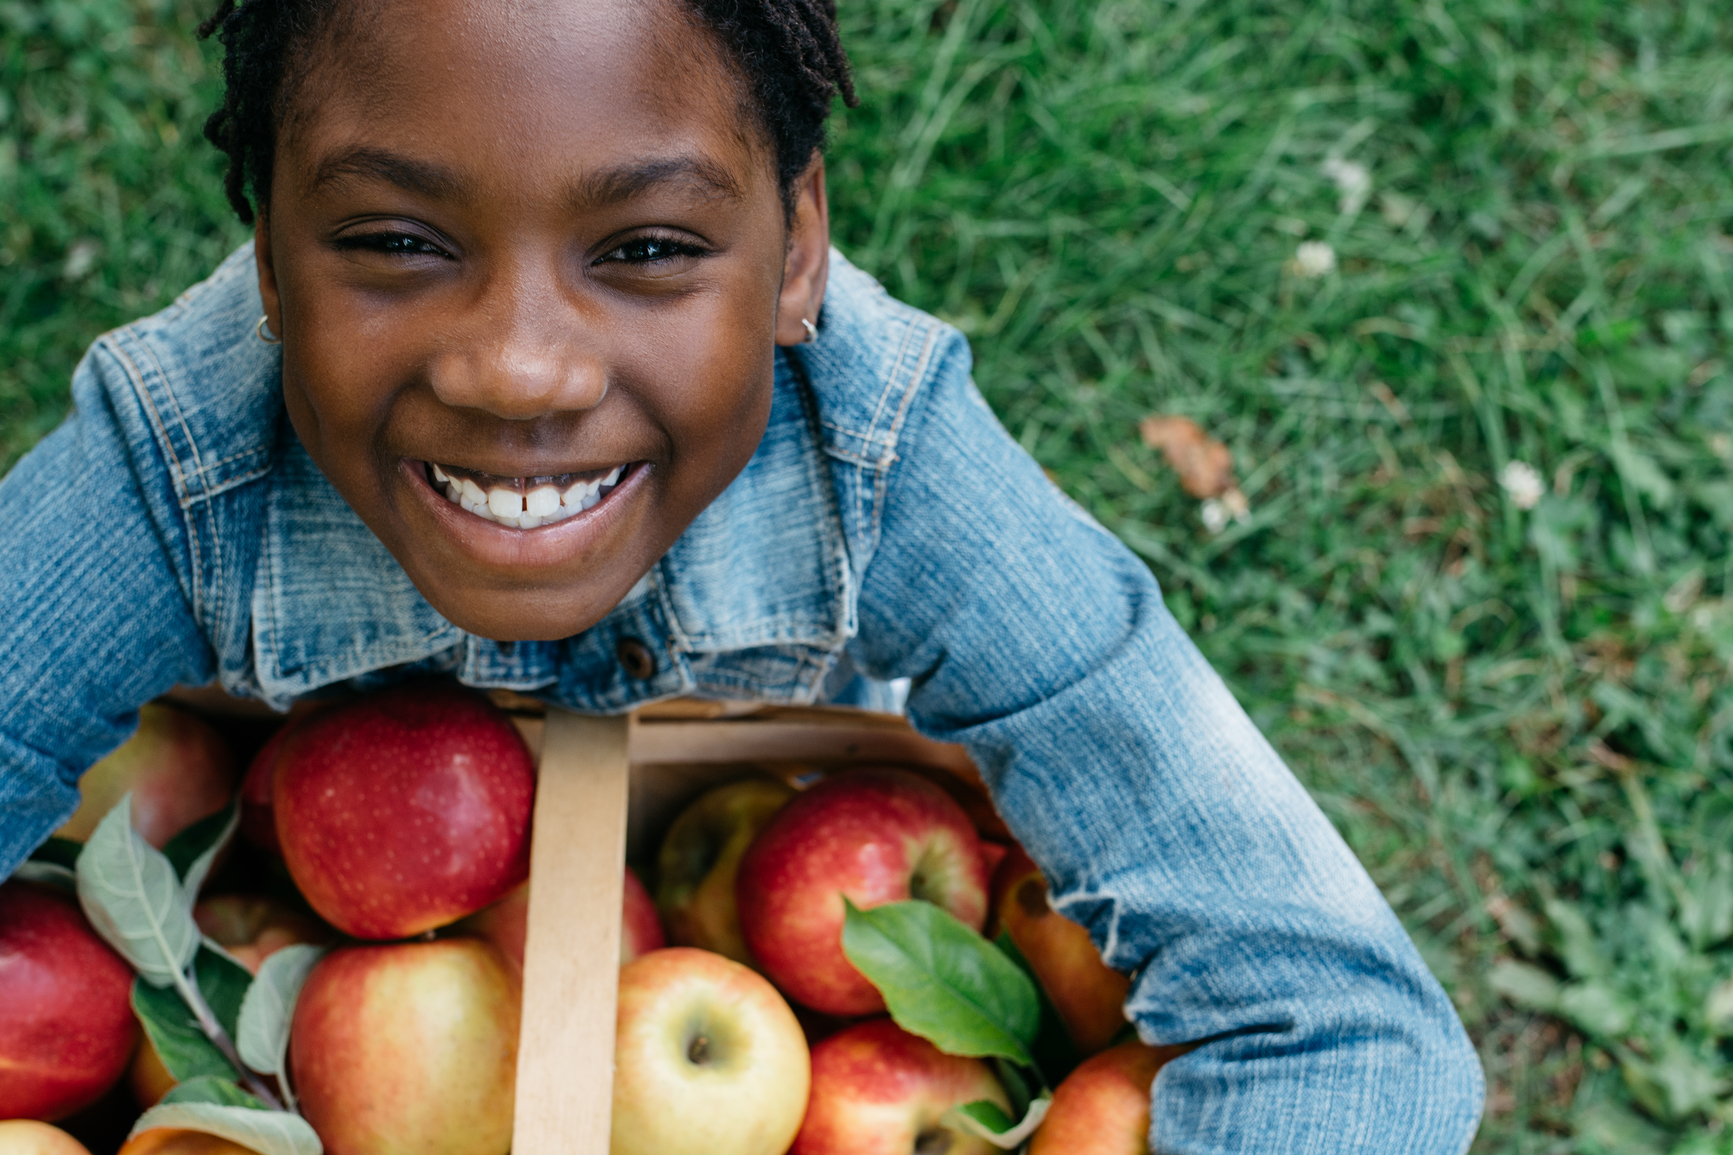 Smiling black girl with apple basket